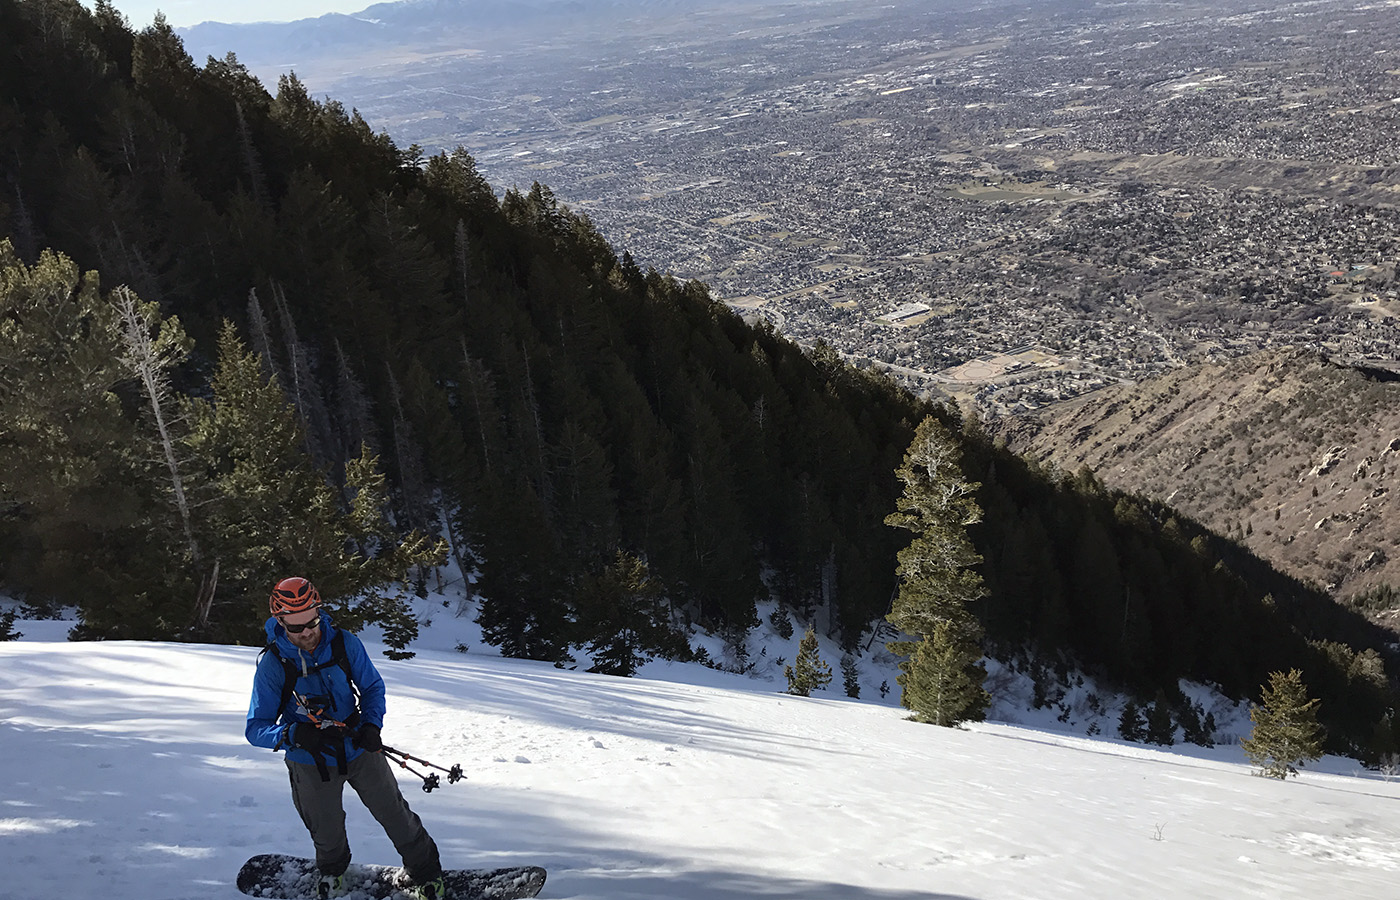 Wasatch Utah Ski Guide - In the Company of Guides